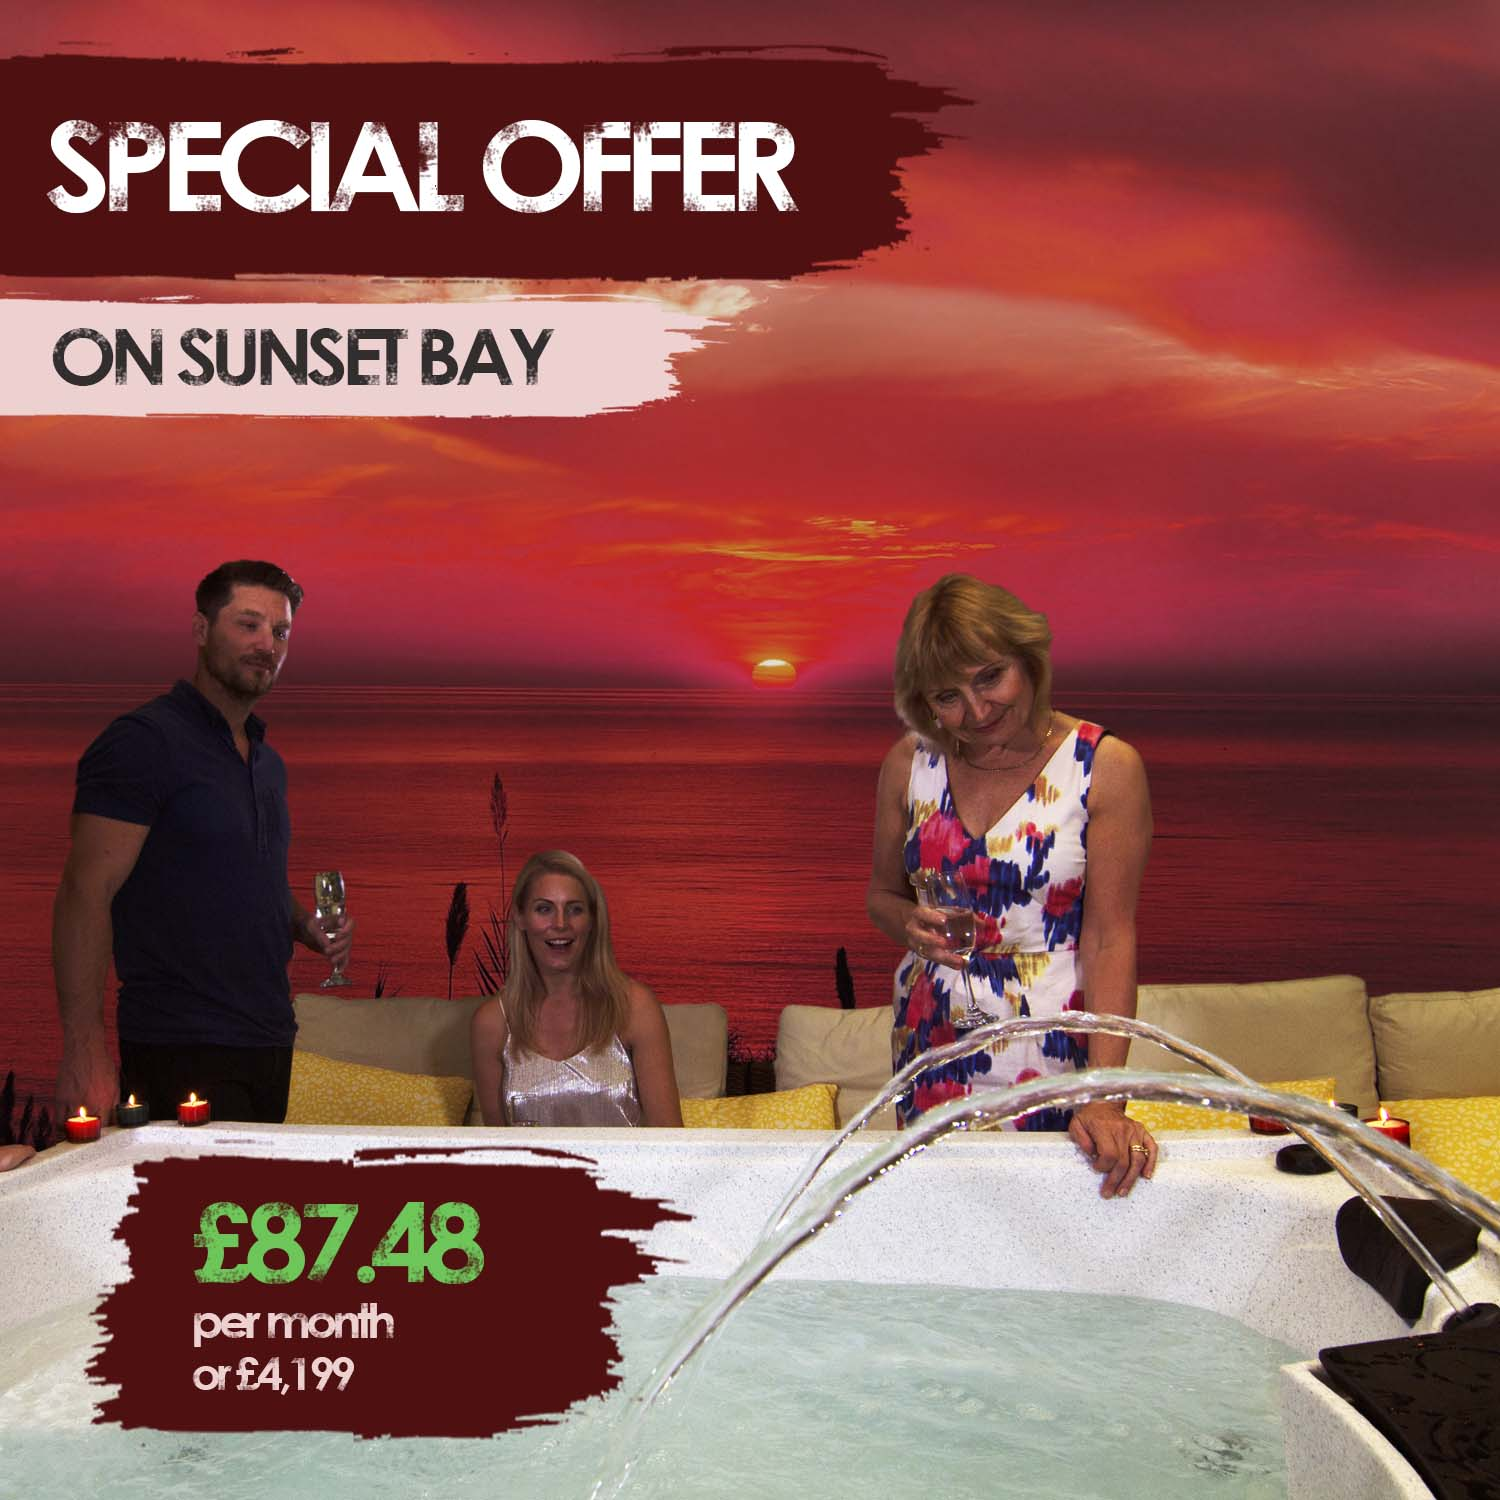 Sunset Bay Hot Tub Special Offer | All American Spa